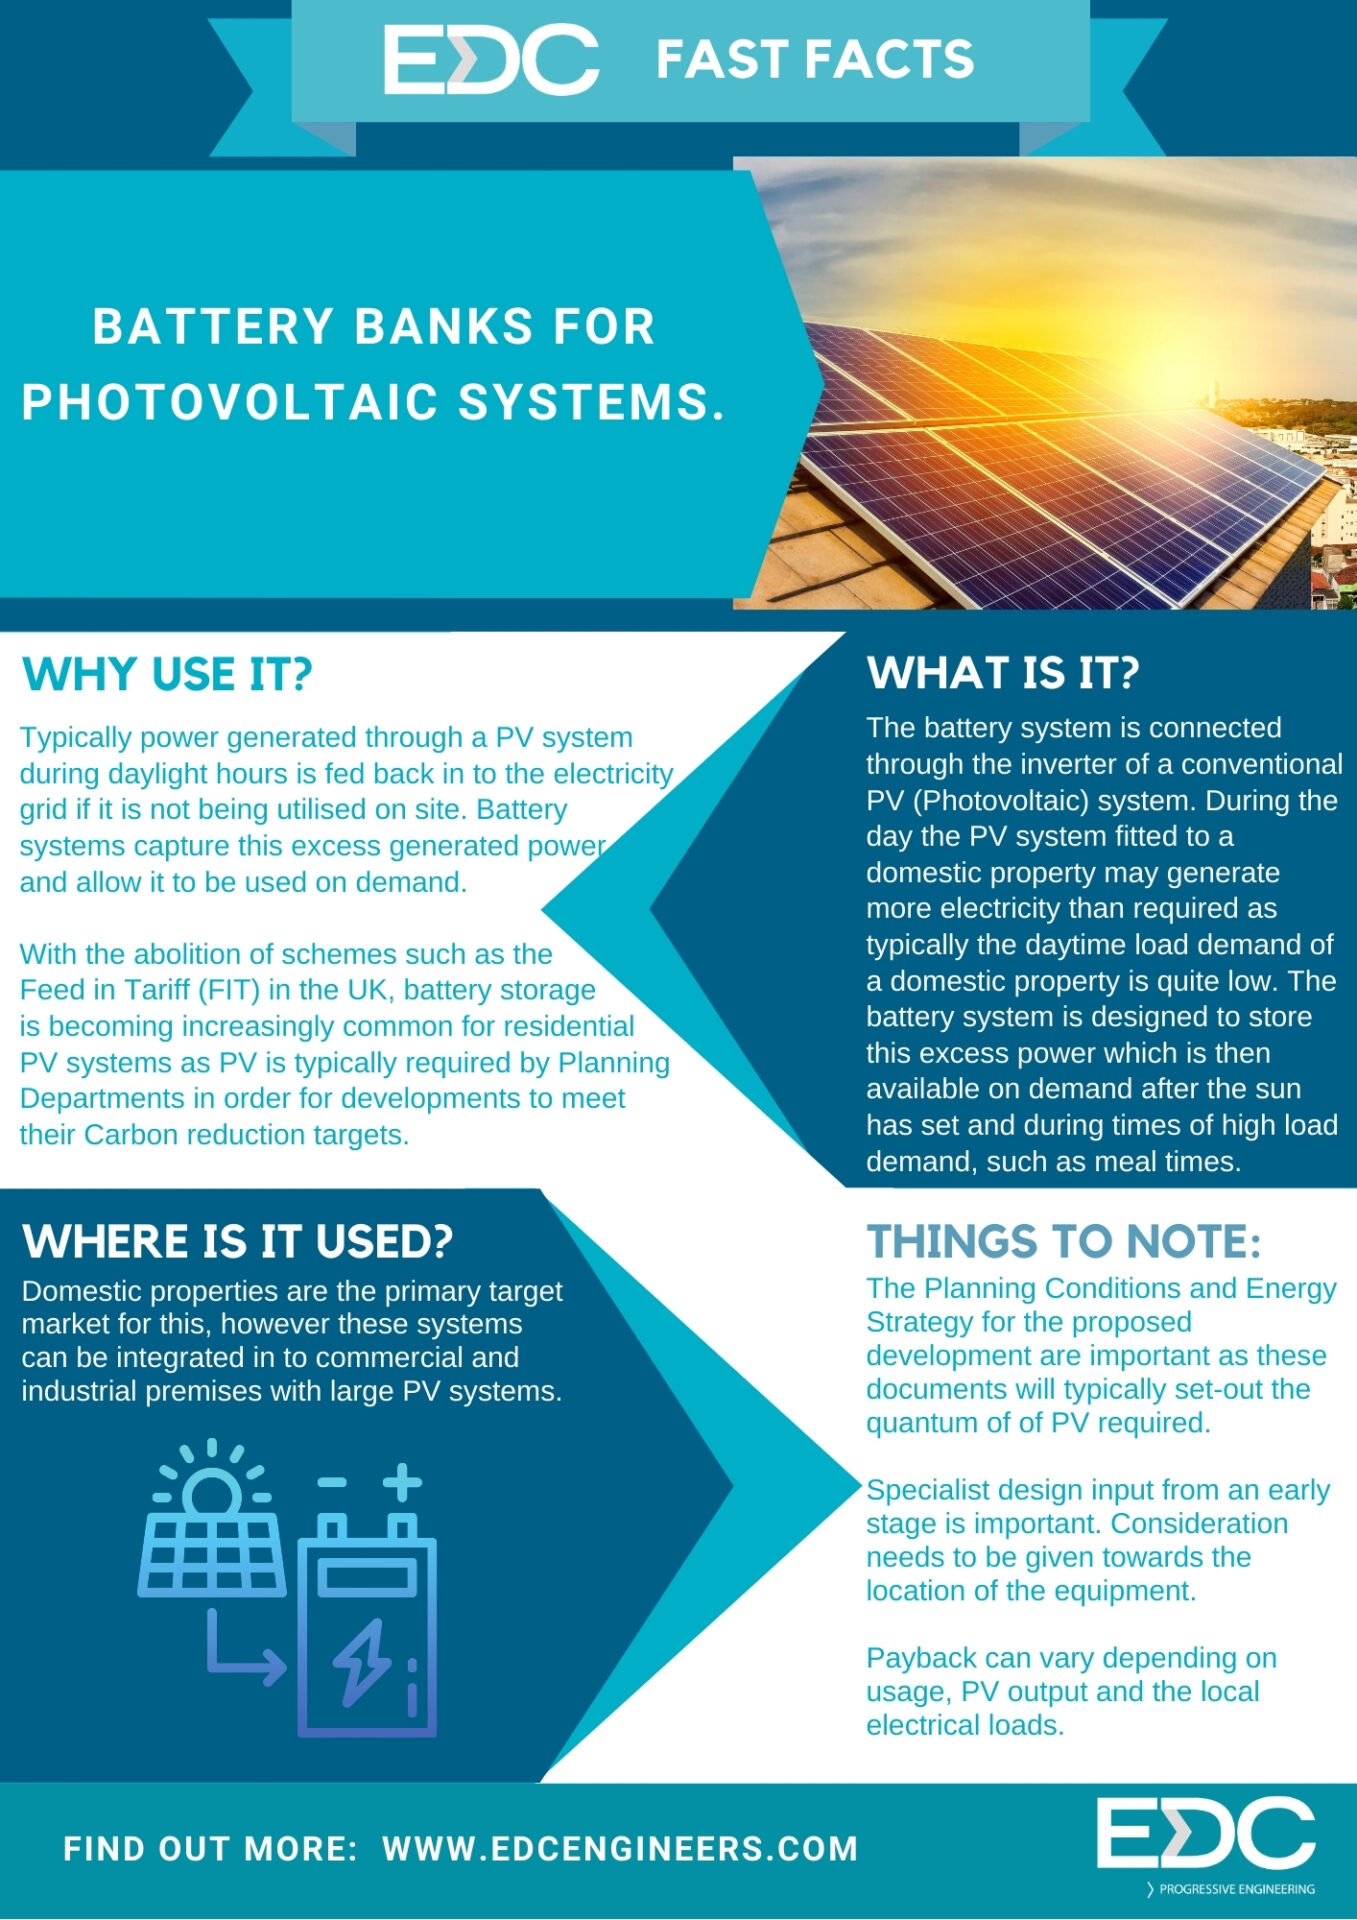 EDC Fast Facts 16 BATTERY BANKS FOR PHOTOVOLTAIC SYSTEMS.